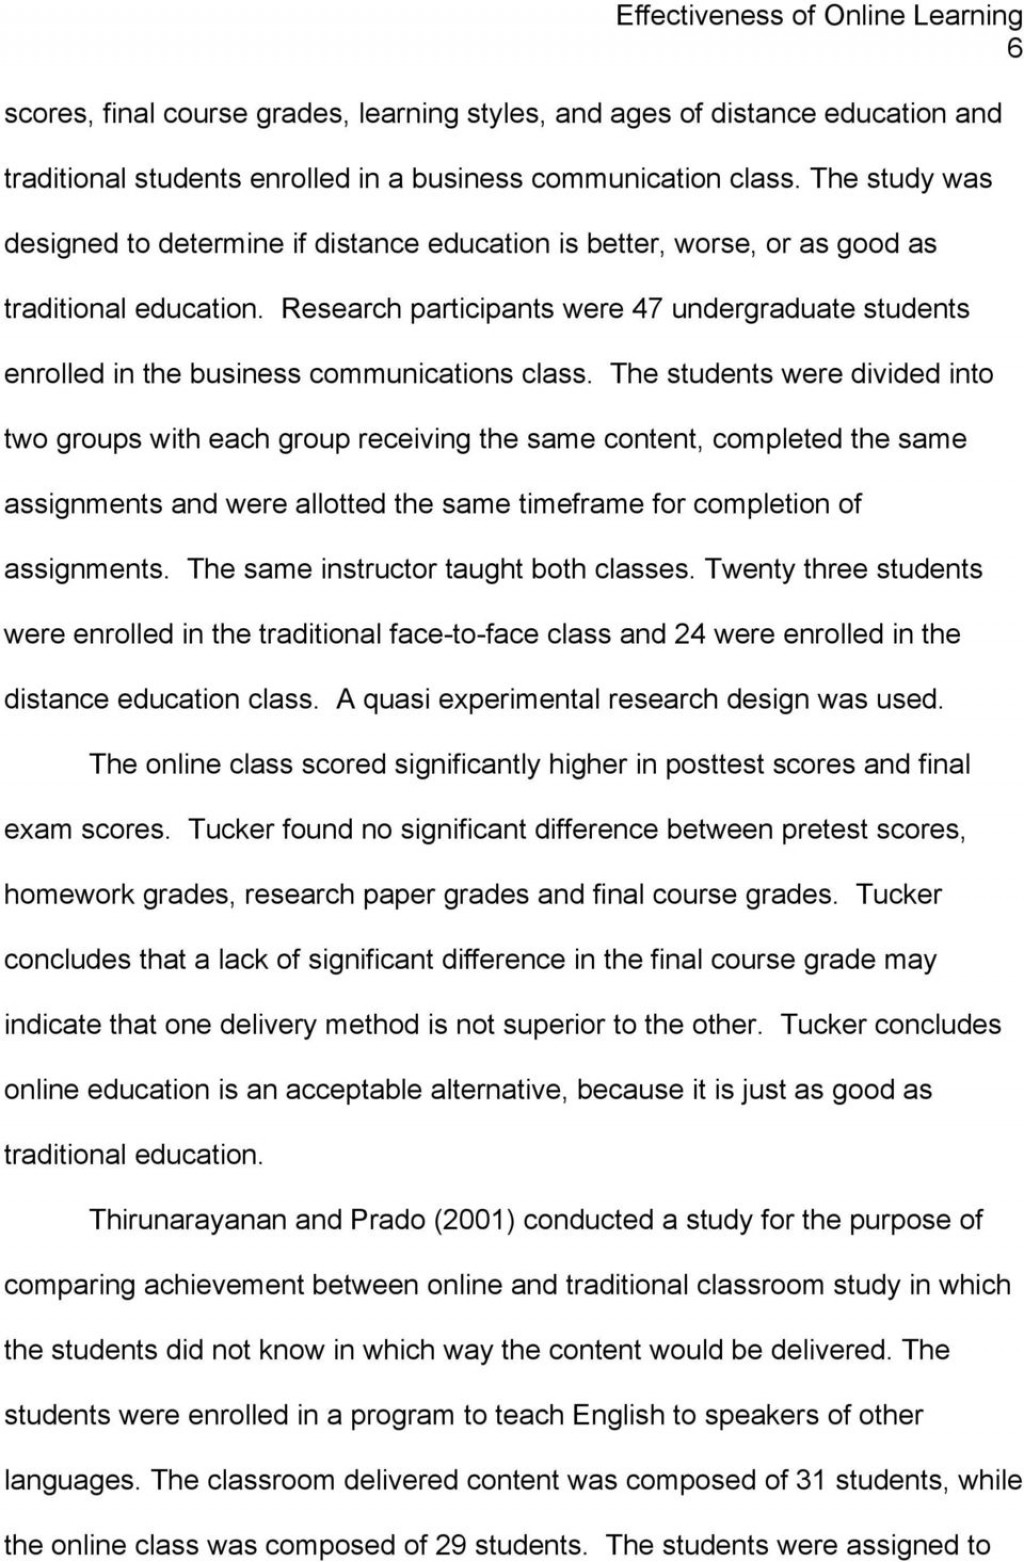 010 Research Paper Page 6 Effectiveness Of Online Amazing Education Large